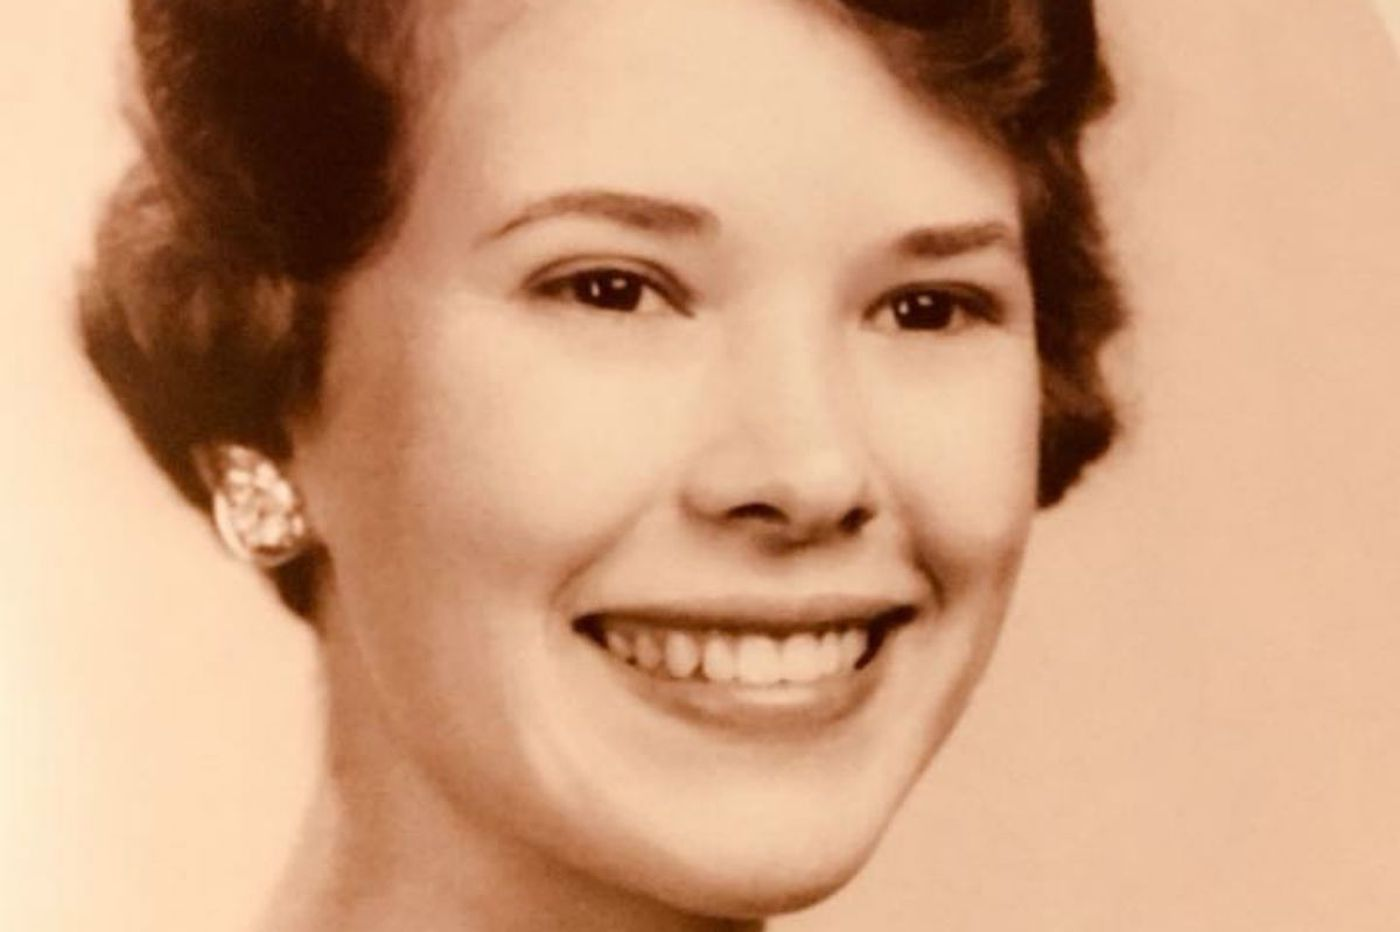 JoAnn B. Foreman, 80, loving matriarch of large extended family